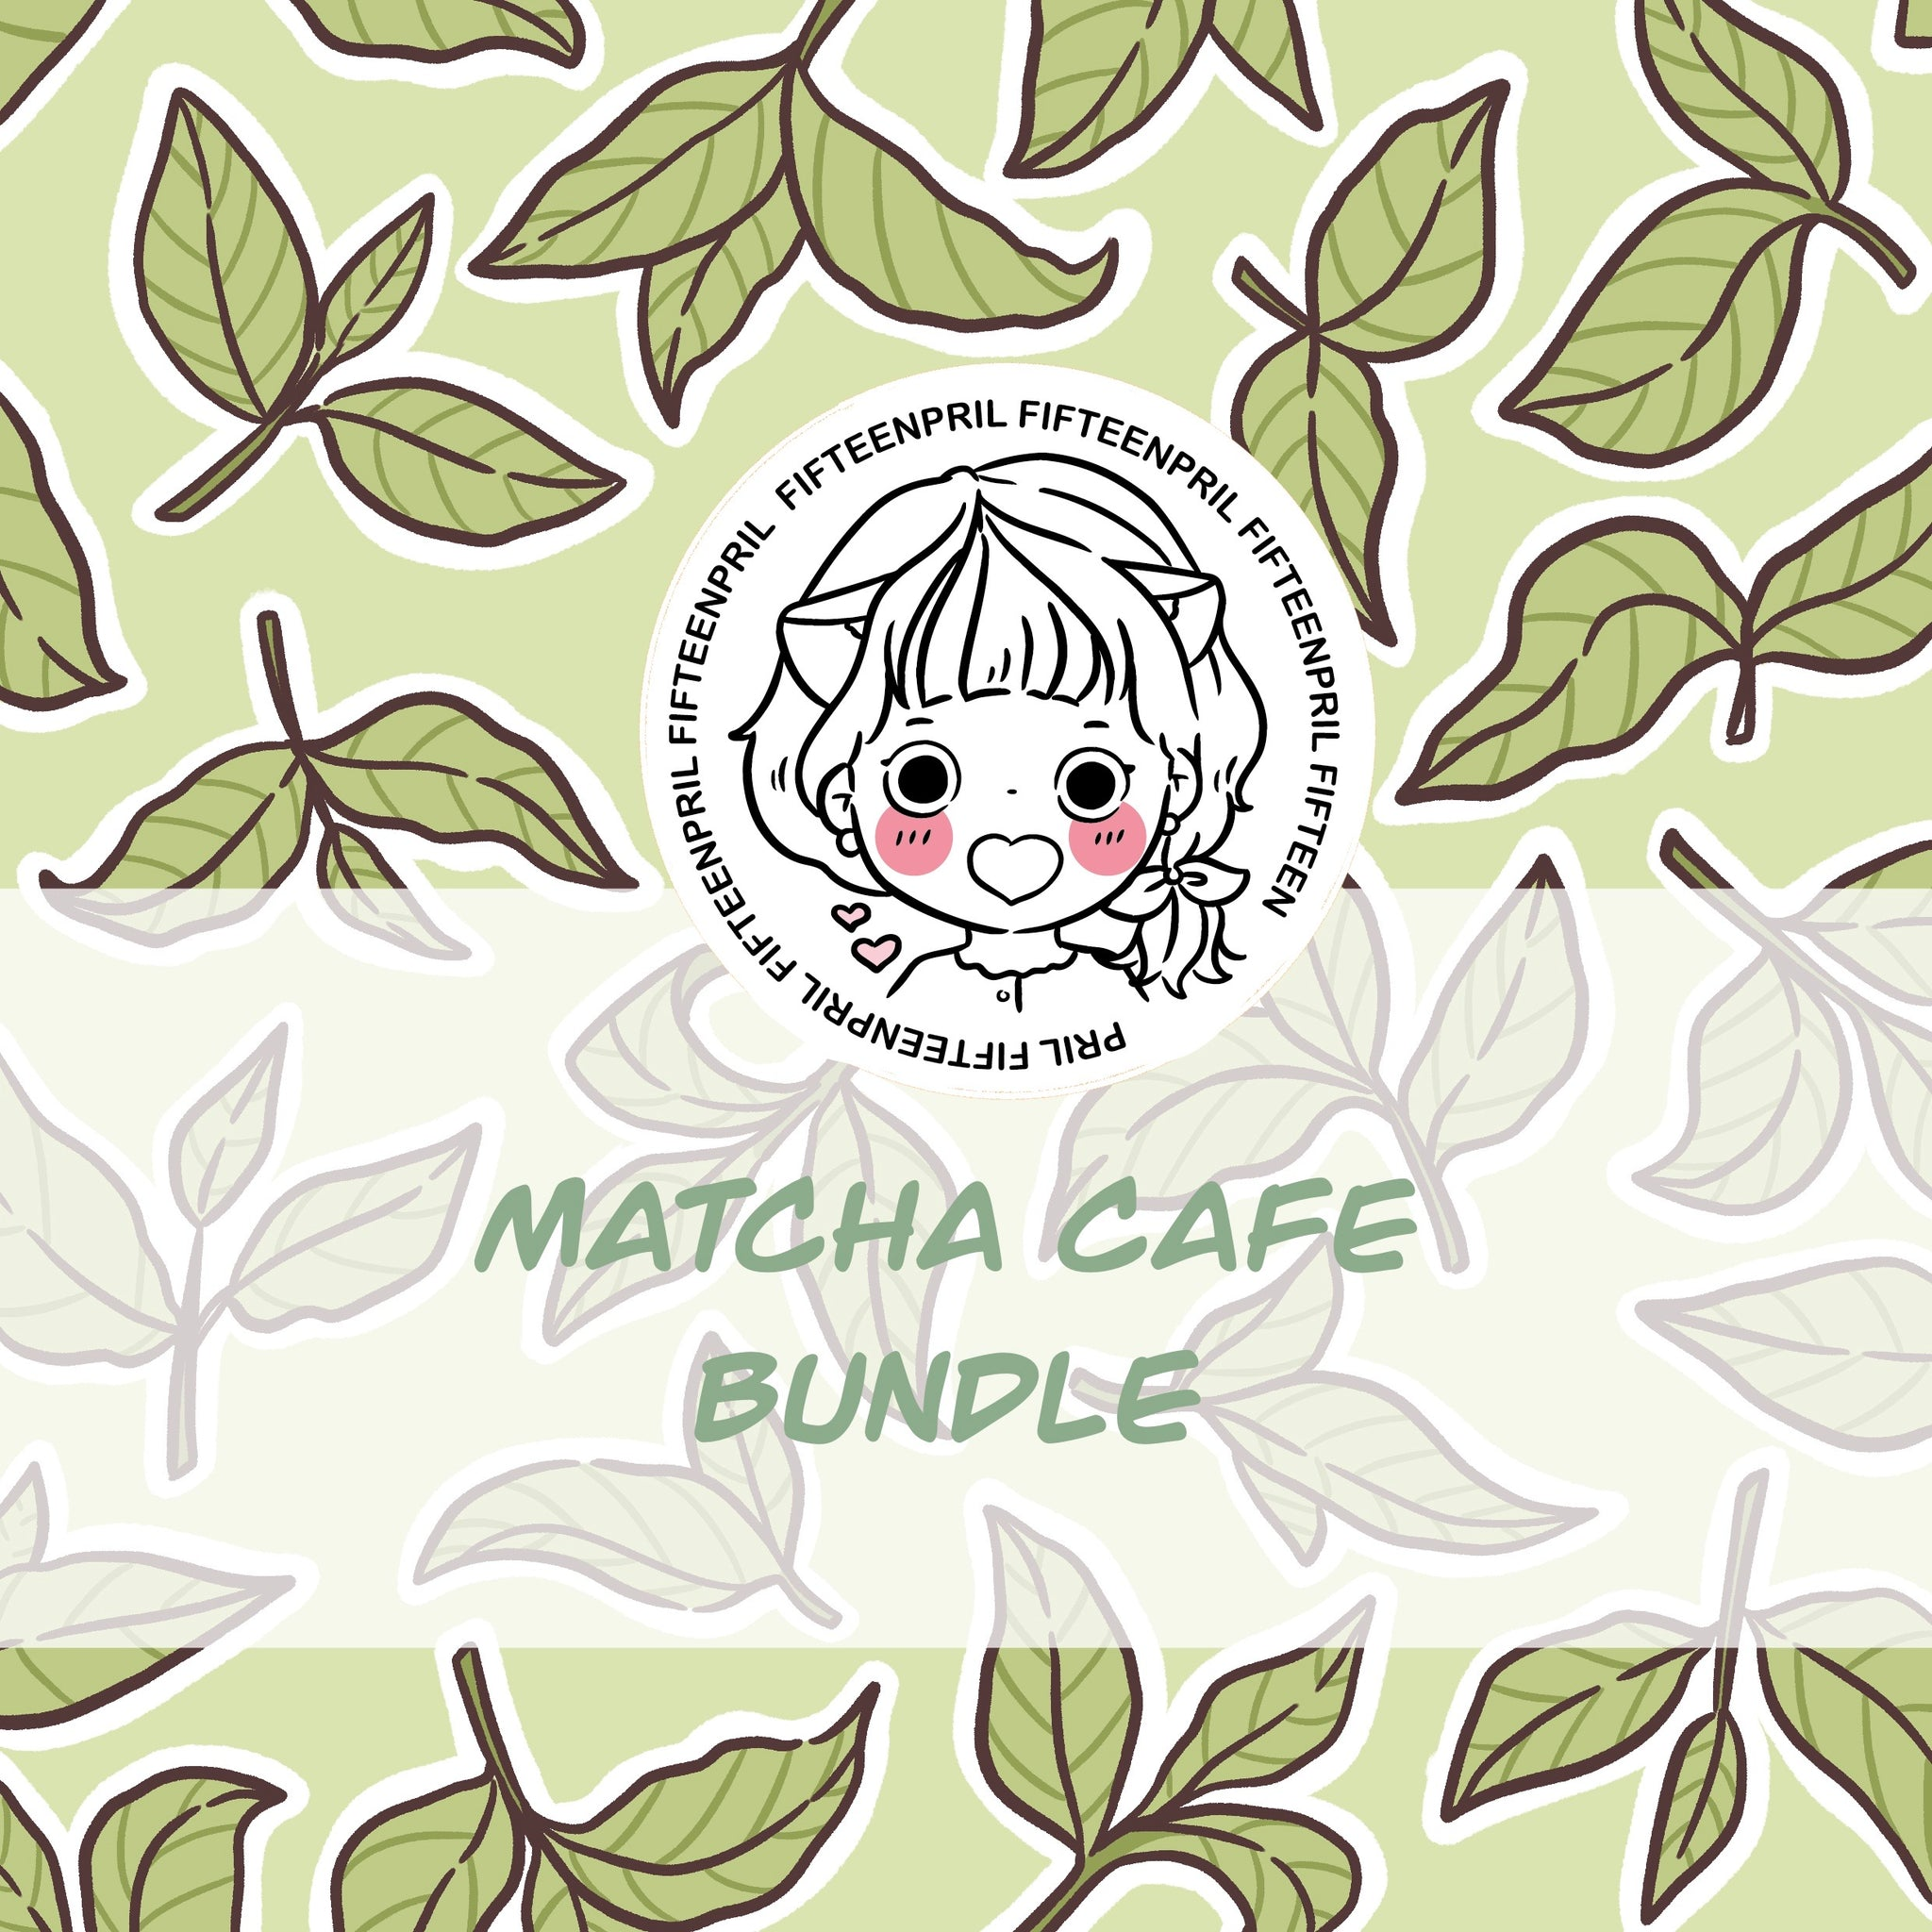 Matcha cafe foxigirl Bundle🍓-more than 20% off! LIMITED Bundles only